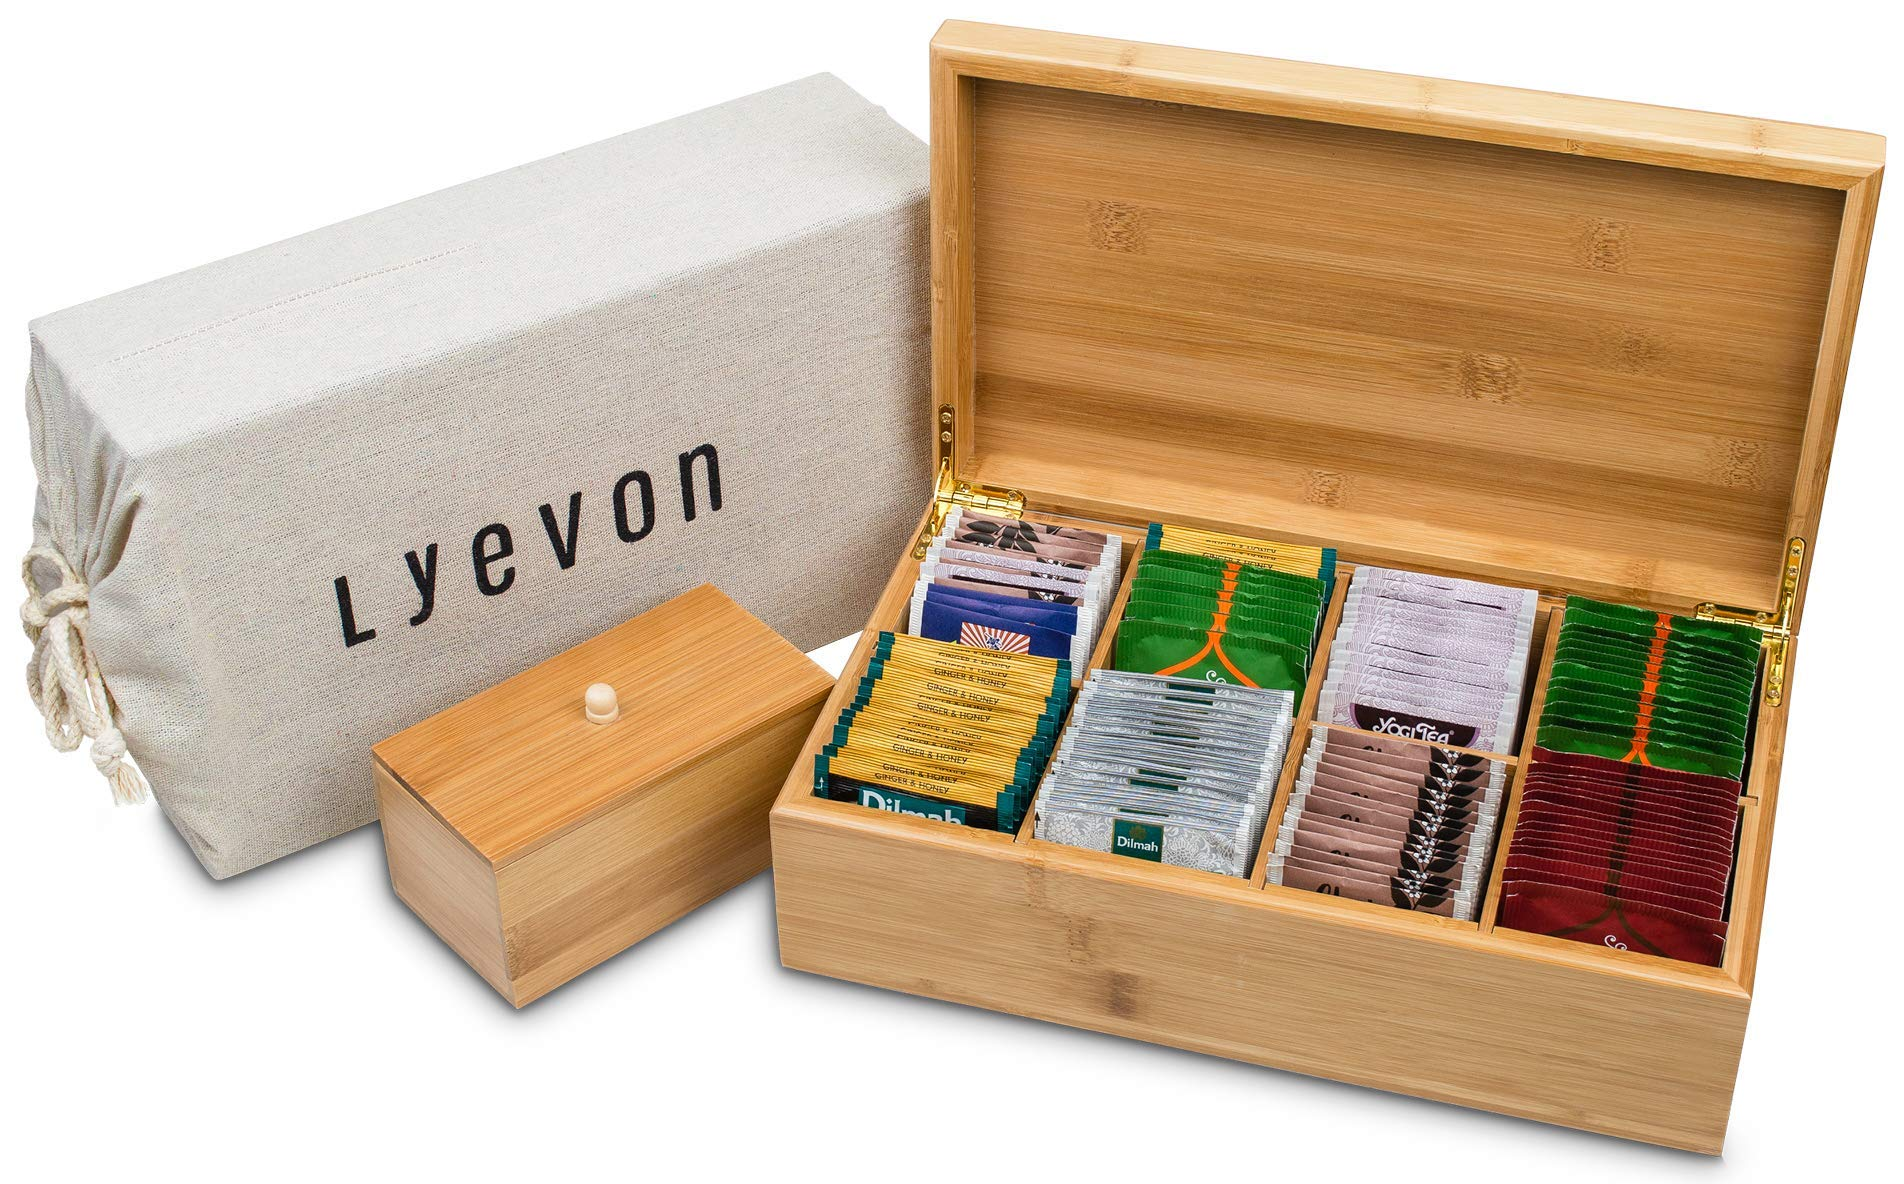 Lyevon Tea Storage Organizer Bamboo Chest Box with 8 Adjustable Compartments for Assorted Tea Bags or Spices -holds 125 Tea Bags by Lyevon (Image #8)